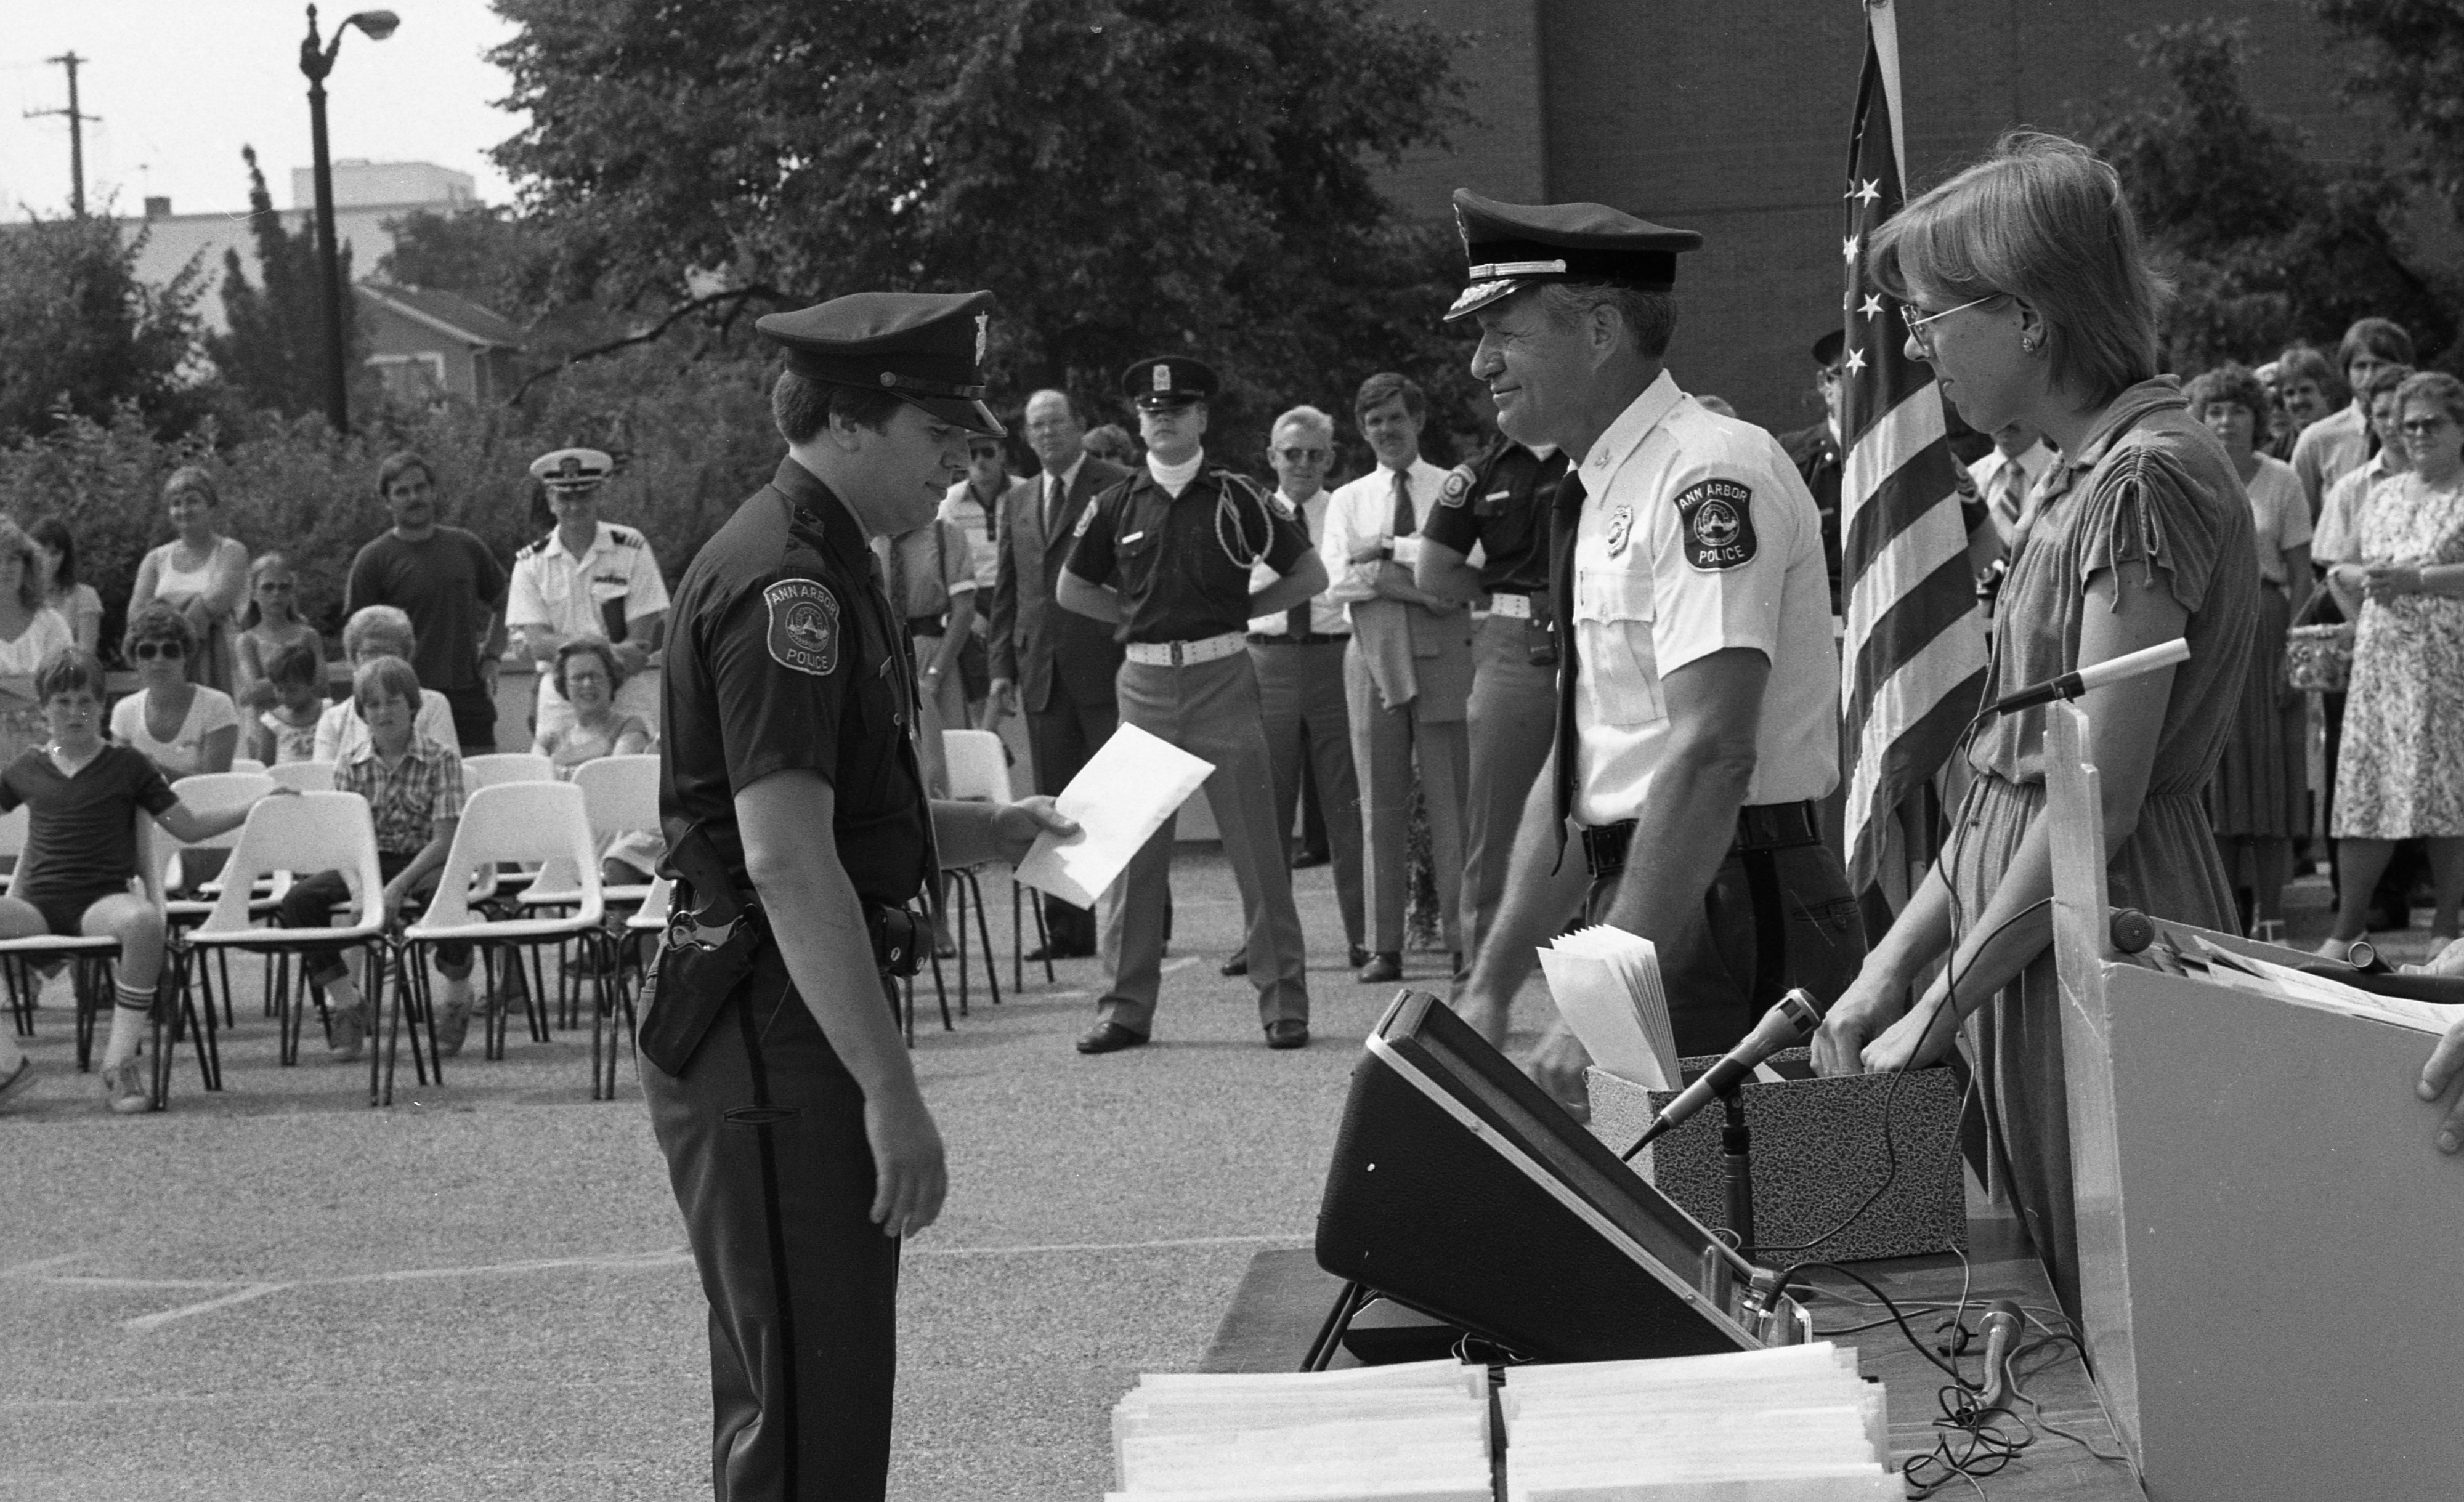 Ann Arbor Police Chief William J. Corbett Presents  Award to Officer, July 1981 image